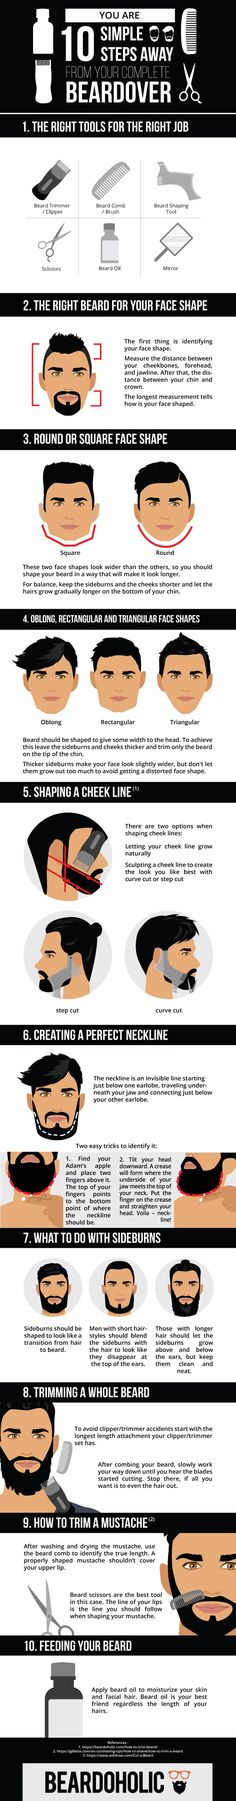 How To Trim a Beard in 10 Simple Steps